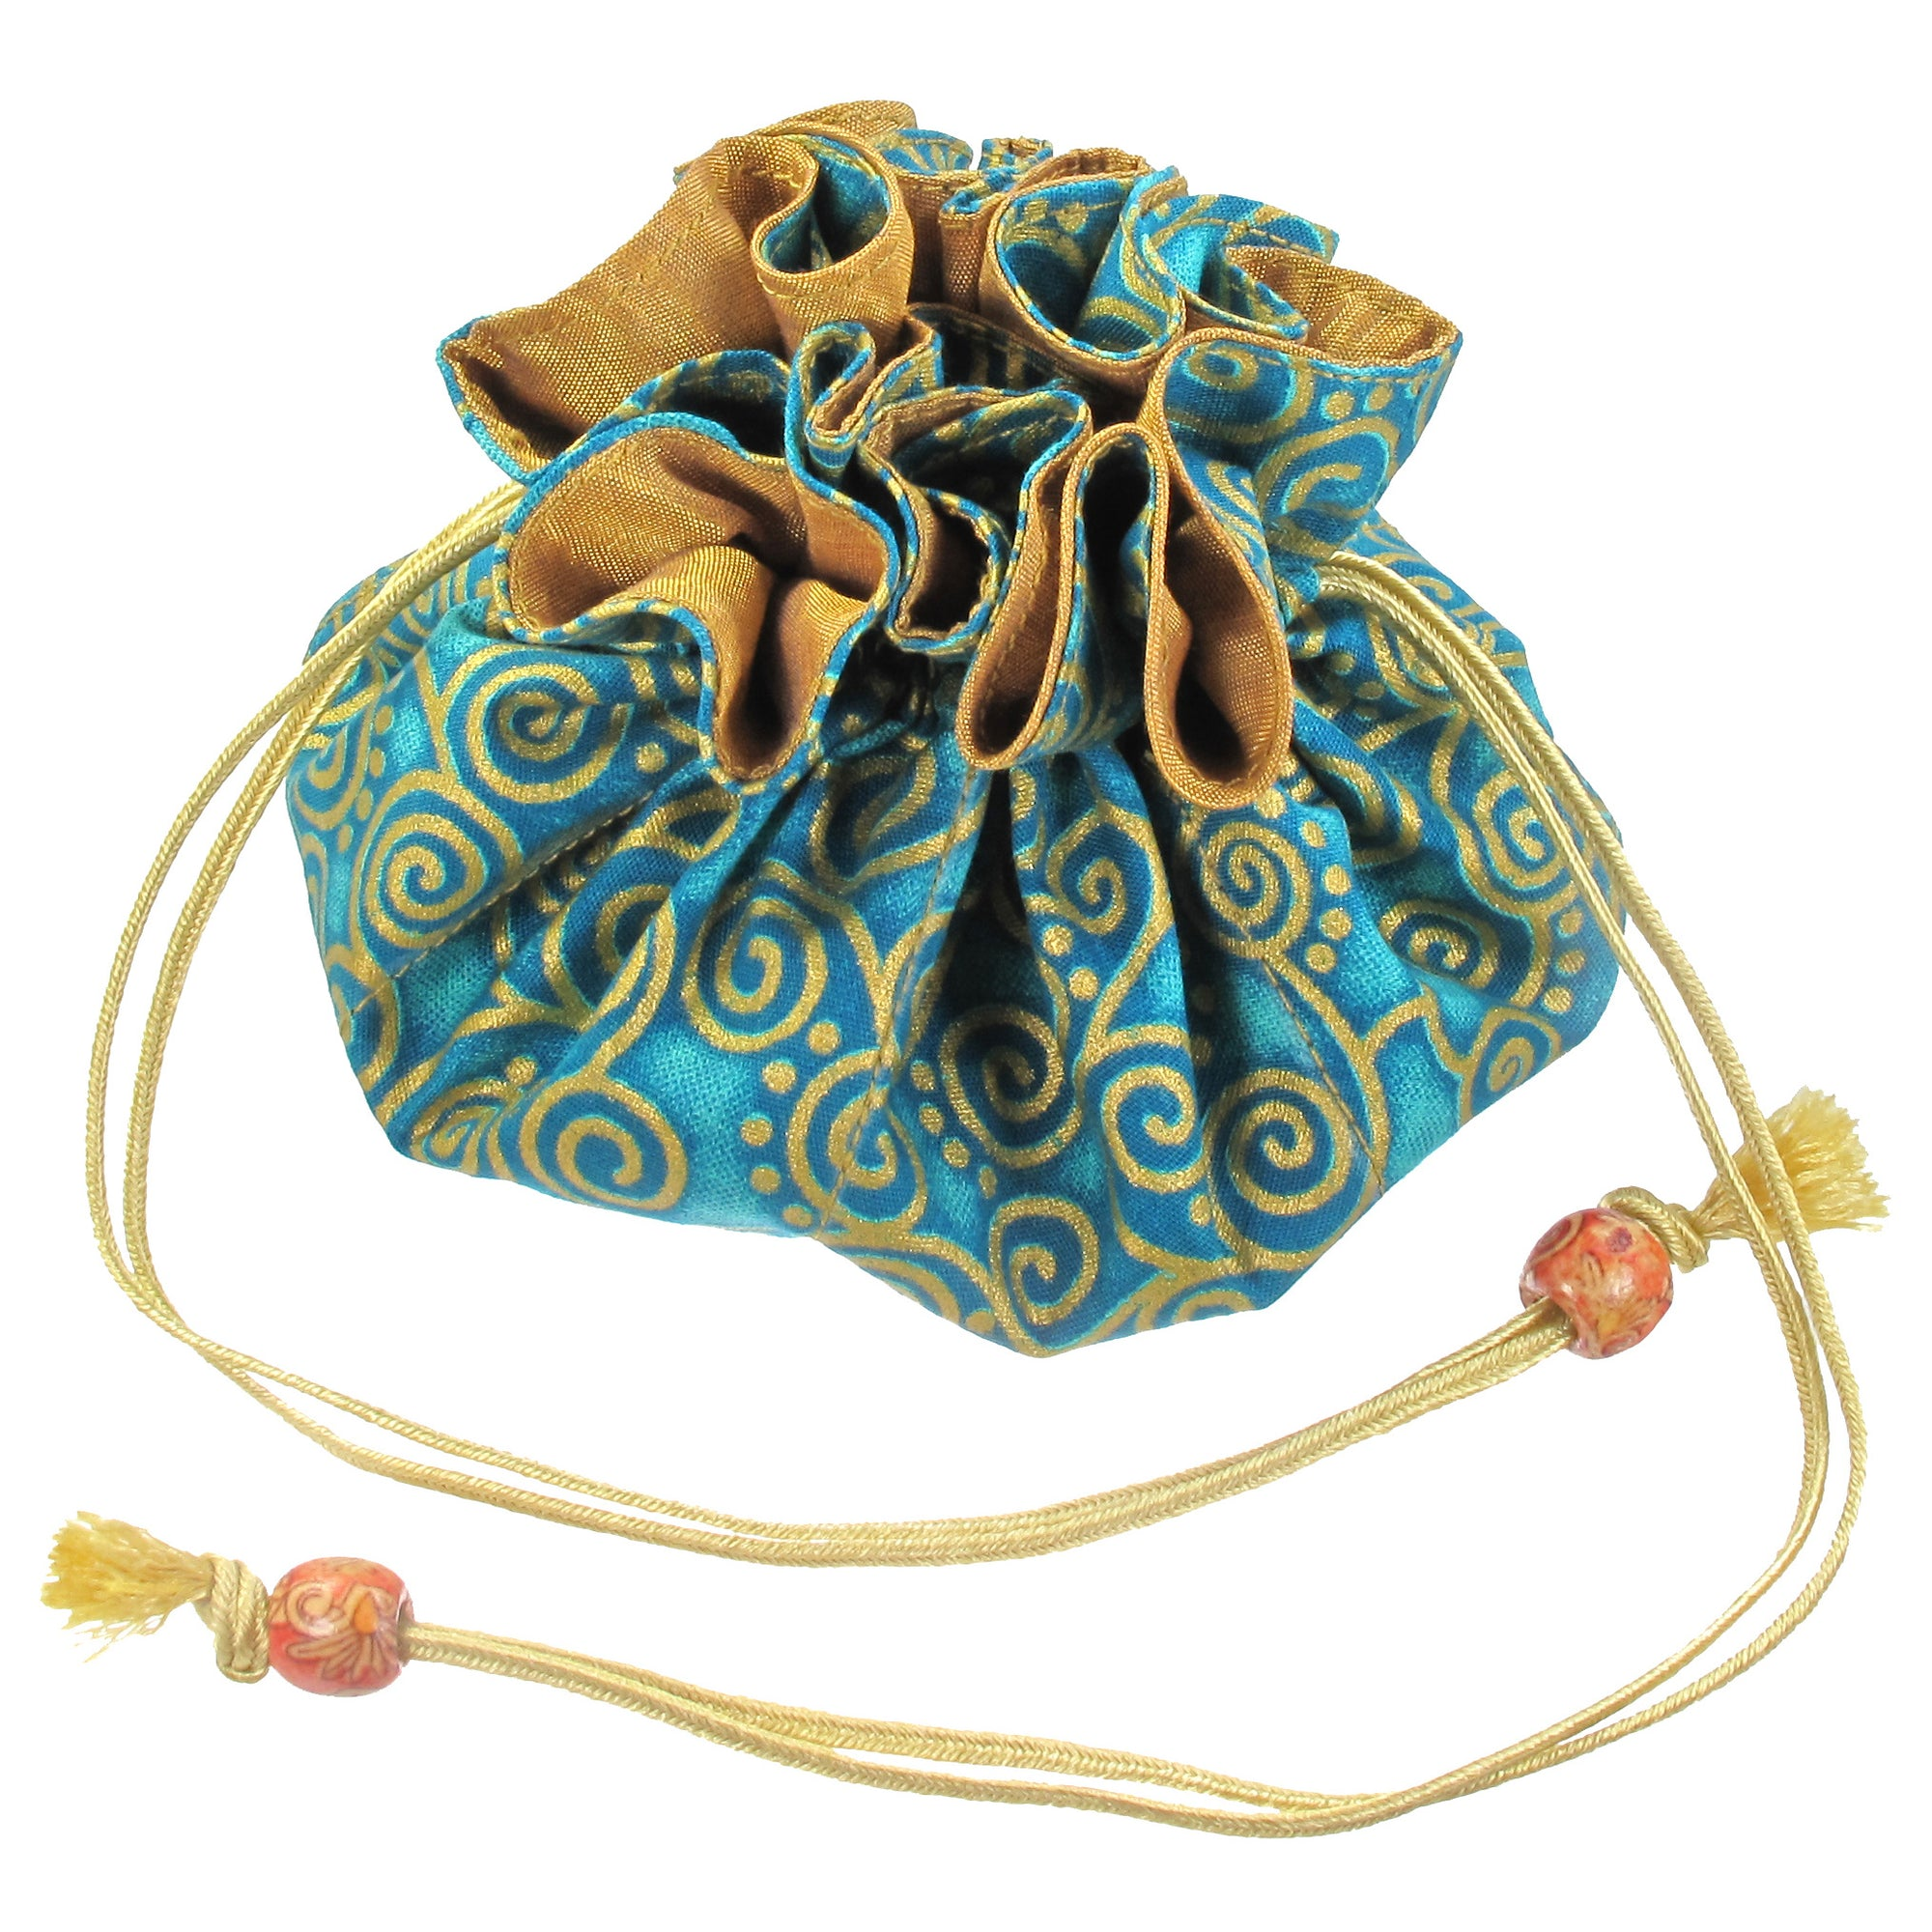 Handmade Drawstring Jewelry Pouch, 8 Pockets, Cotton, Aquamarine with Gold Swirls